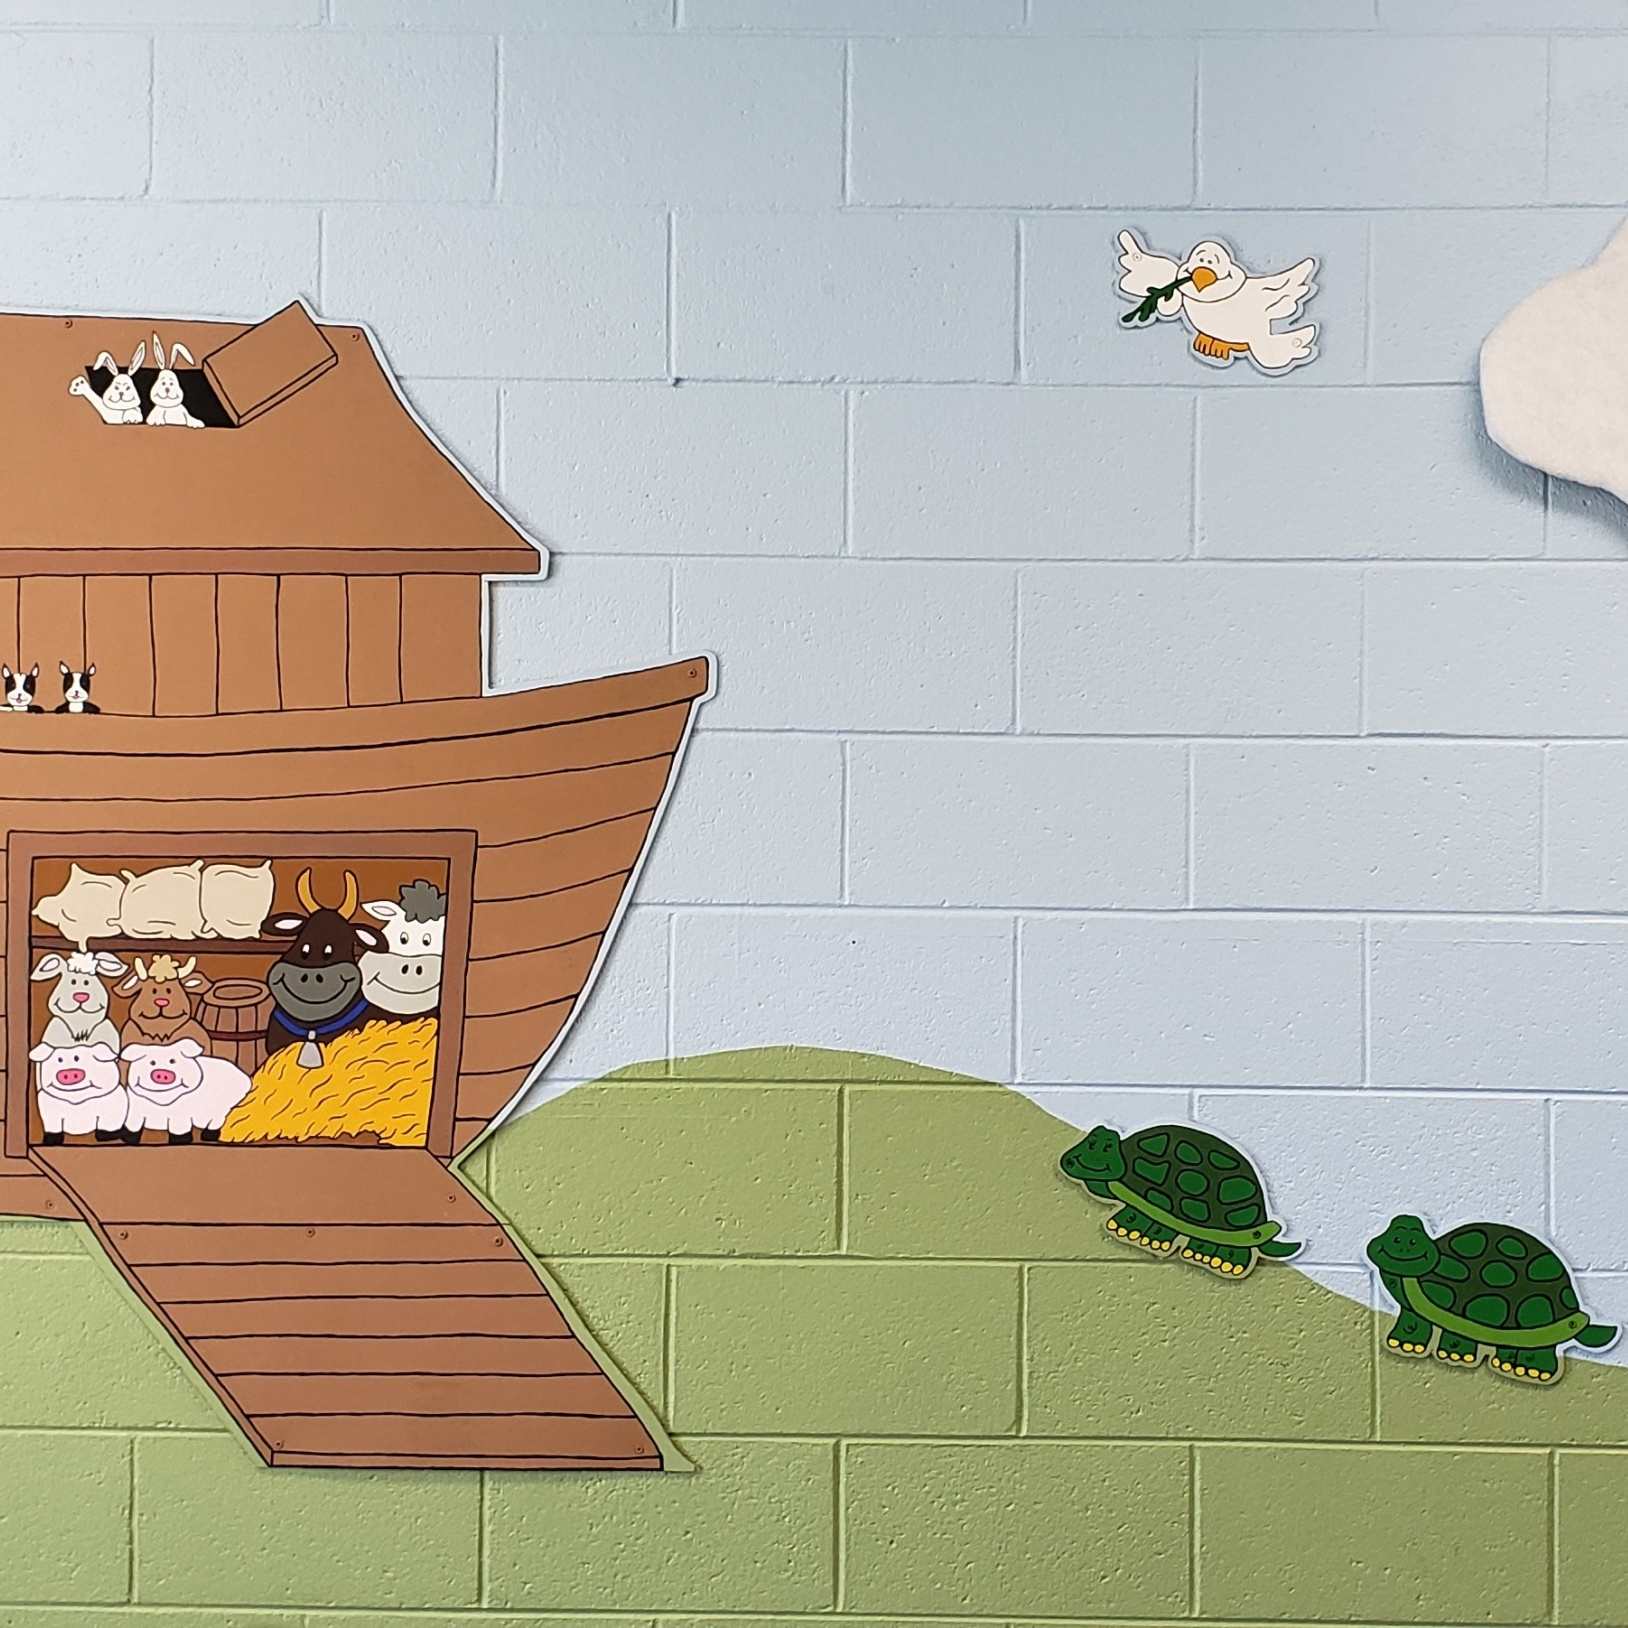 Wall mural of Noah's ark with two turtles